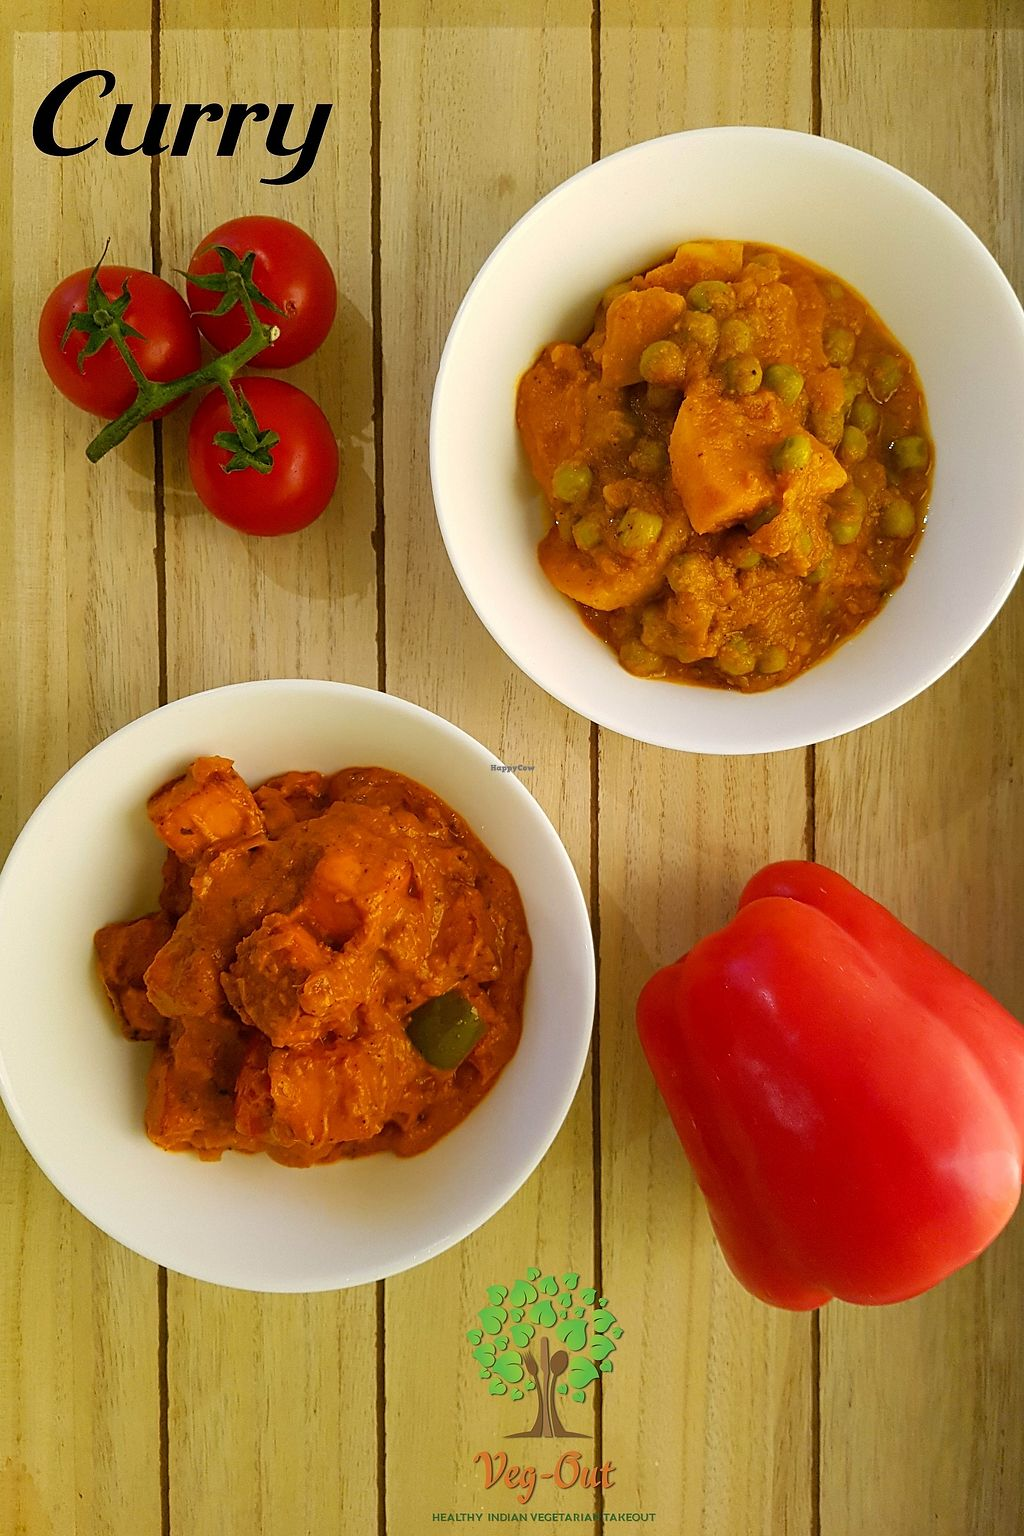 """Photo of Veg-Out  by <a href=""""/members/profile/VegOut-Amsterdam"""">VegOut-Amsterdam</a> <br/>Authentic & delicious Indian curries with right amount of spiciness <br/> January 12, 2018  - <a href='/contact/abuse/image/109336/345846'>Report</a>"""